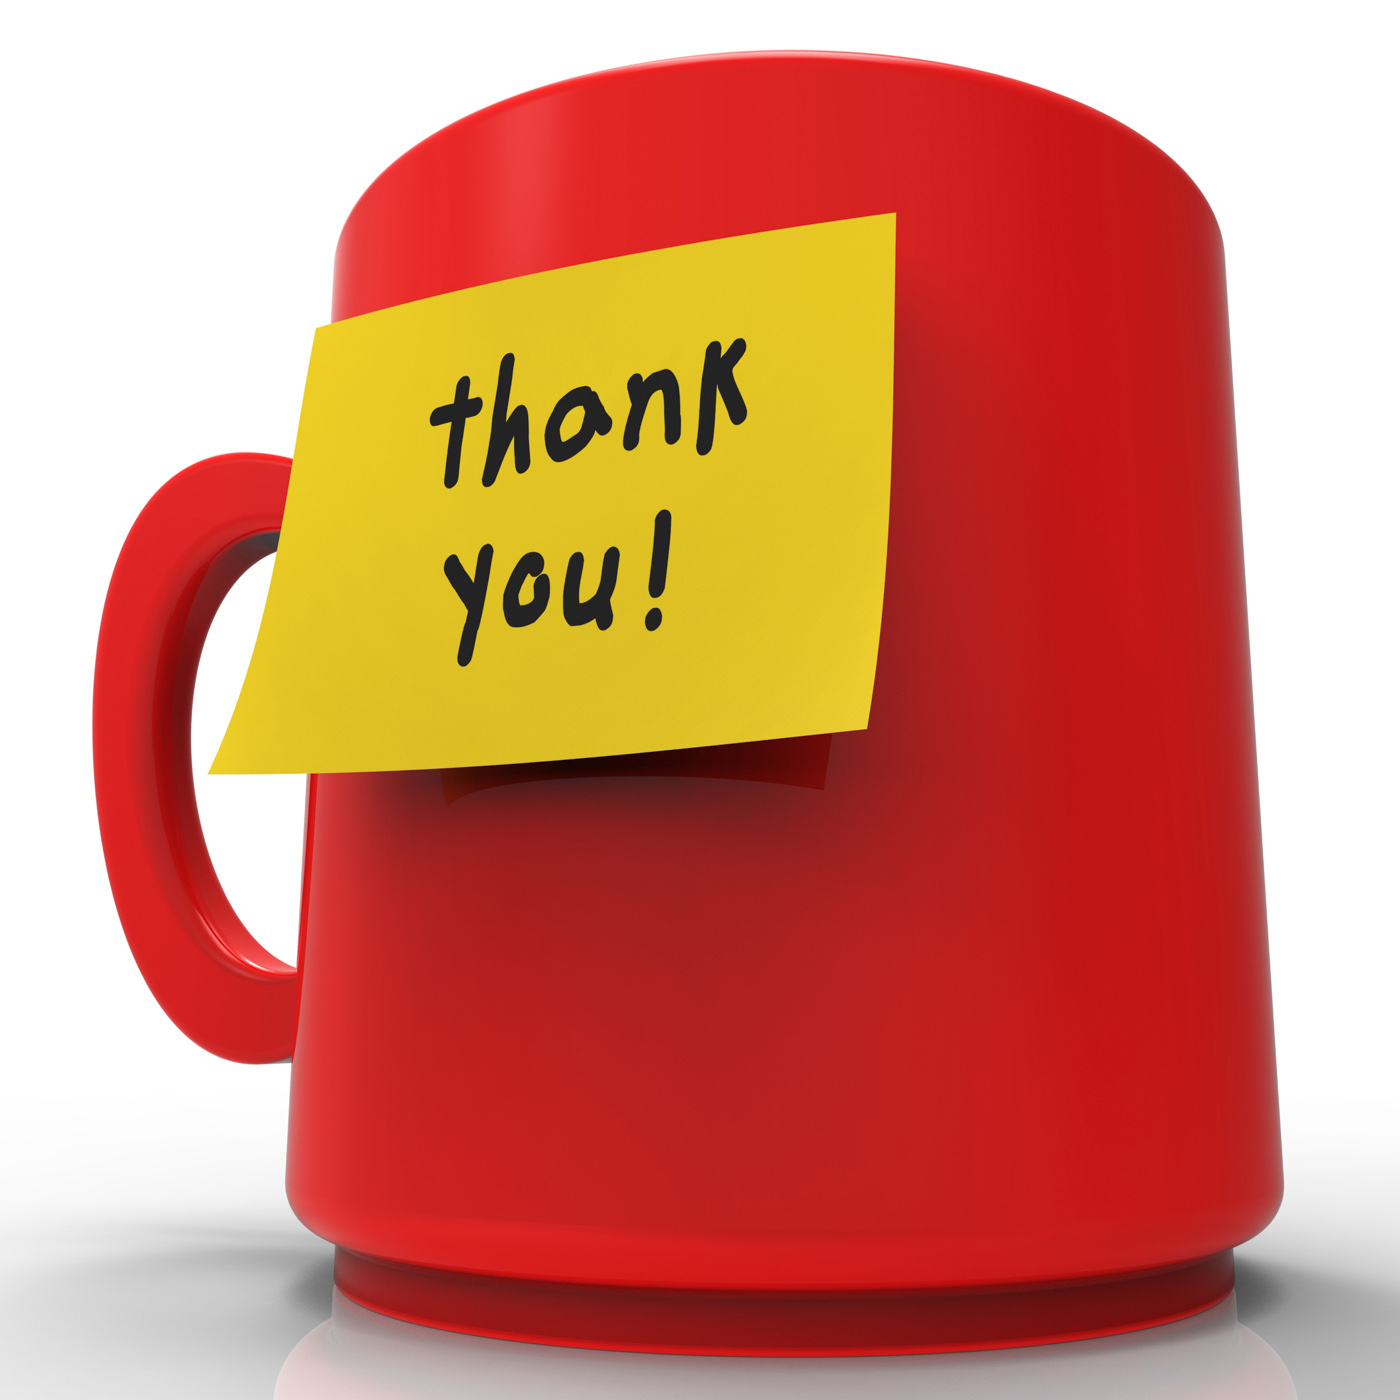 Thank you represents many thanks 3d rendering photo